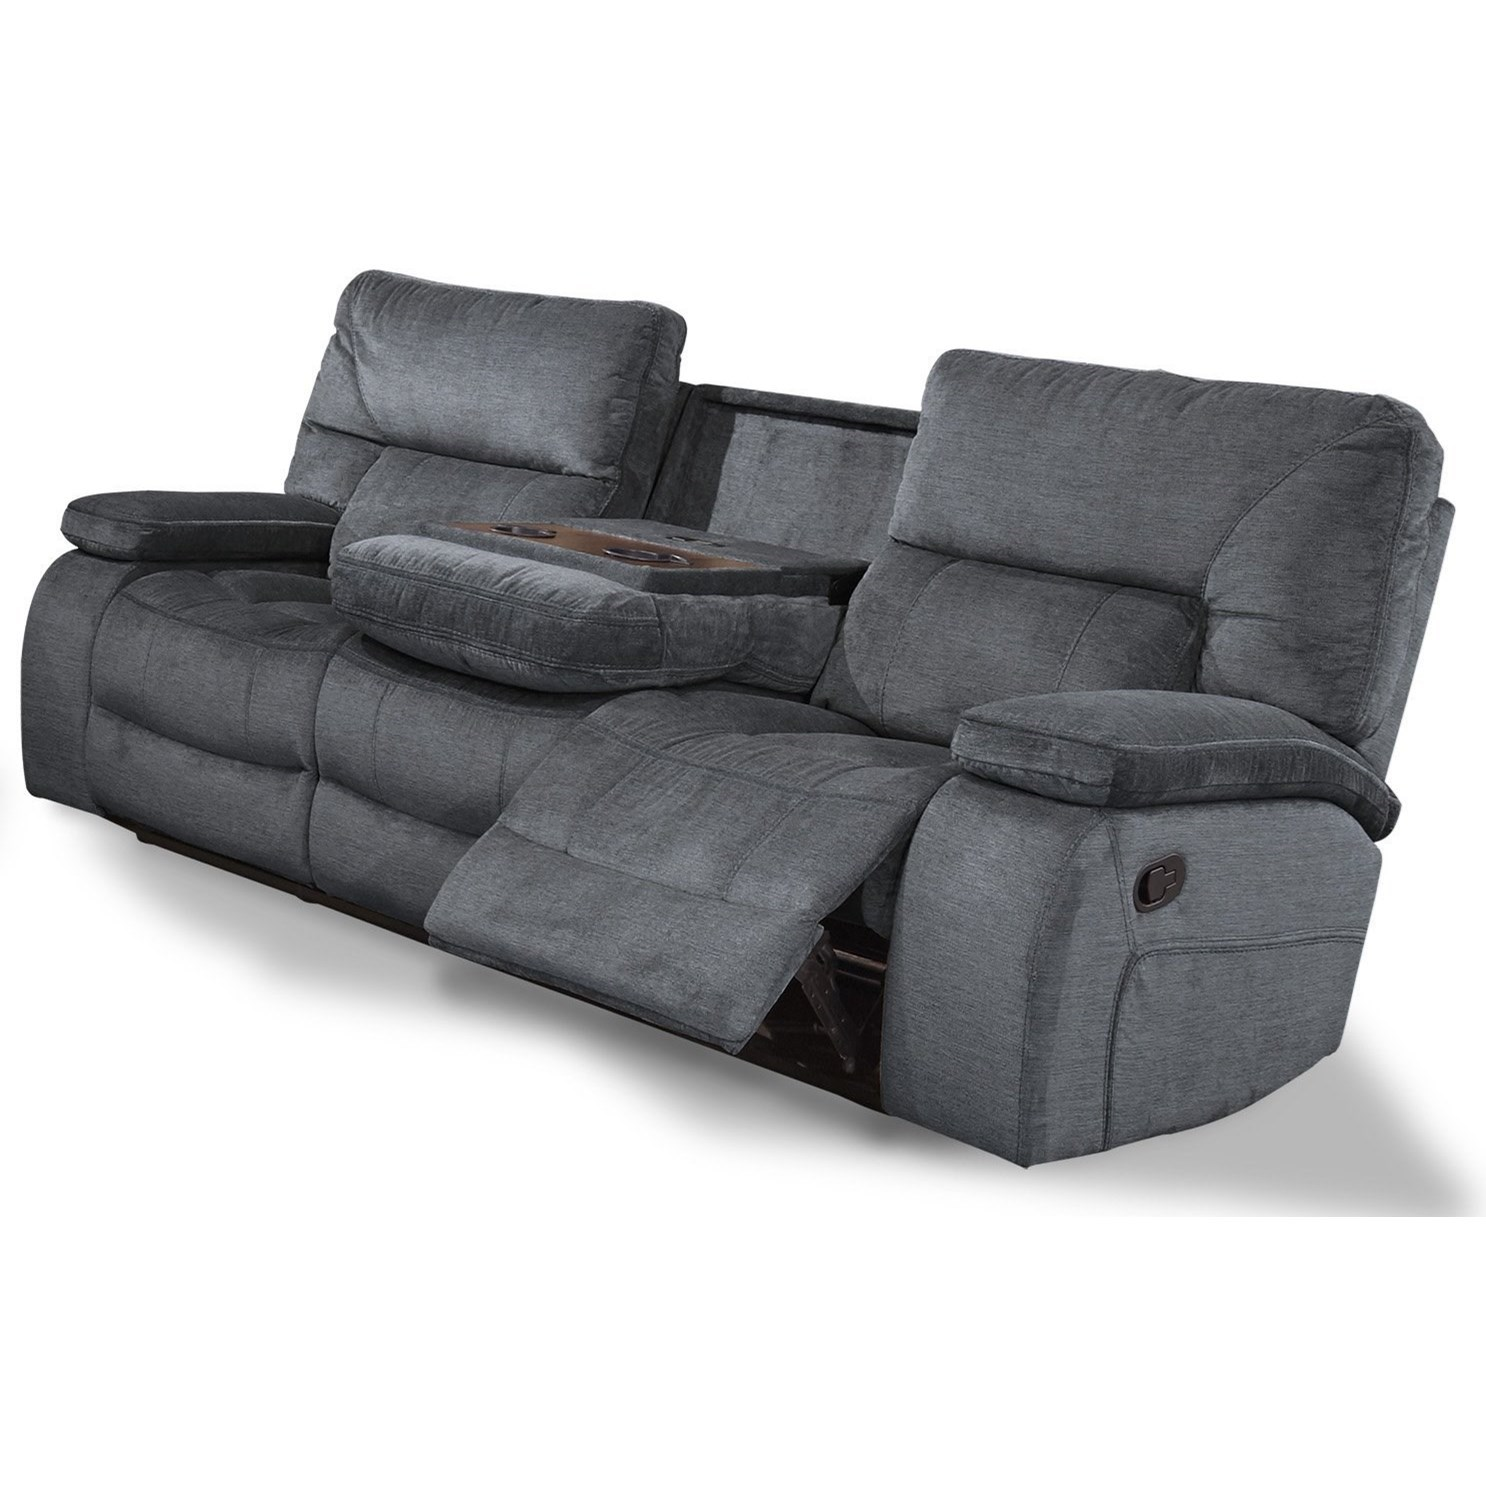 Dual Reclining Sofa with Drop Down Console